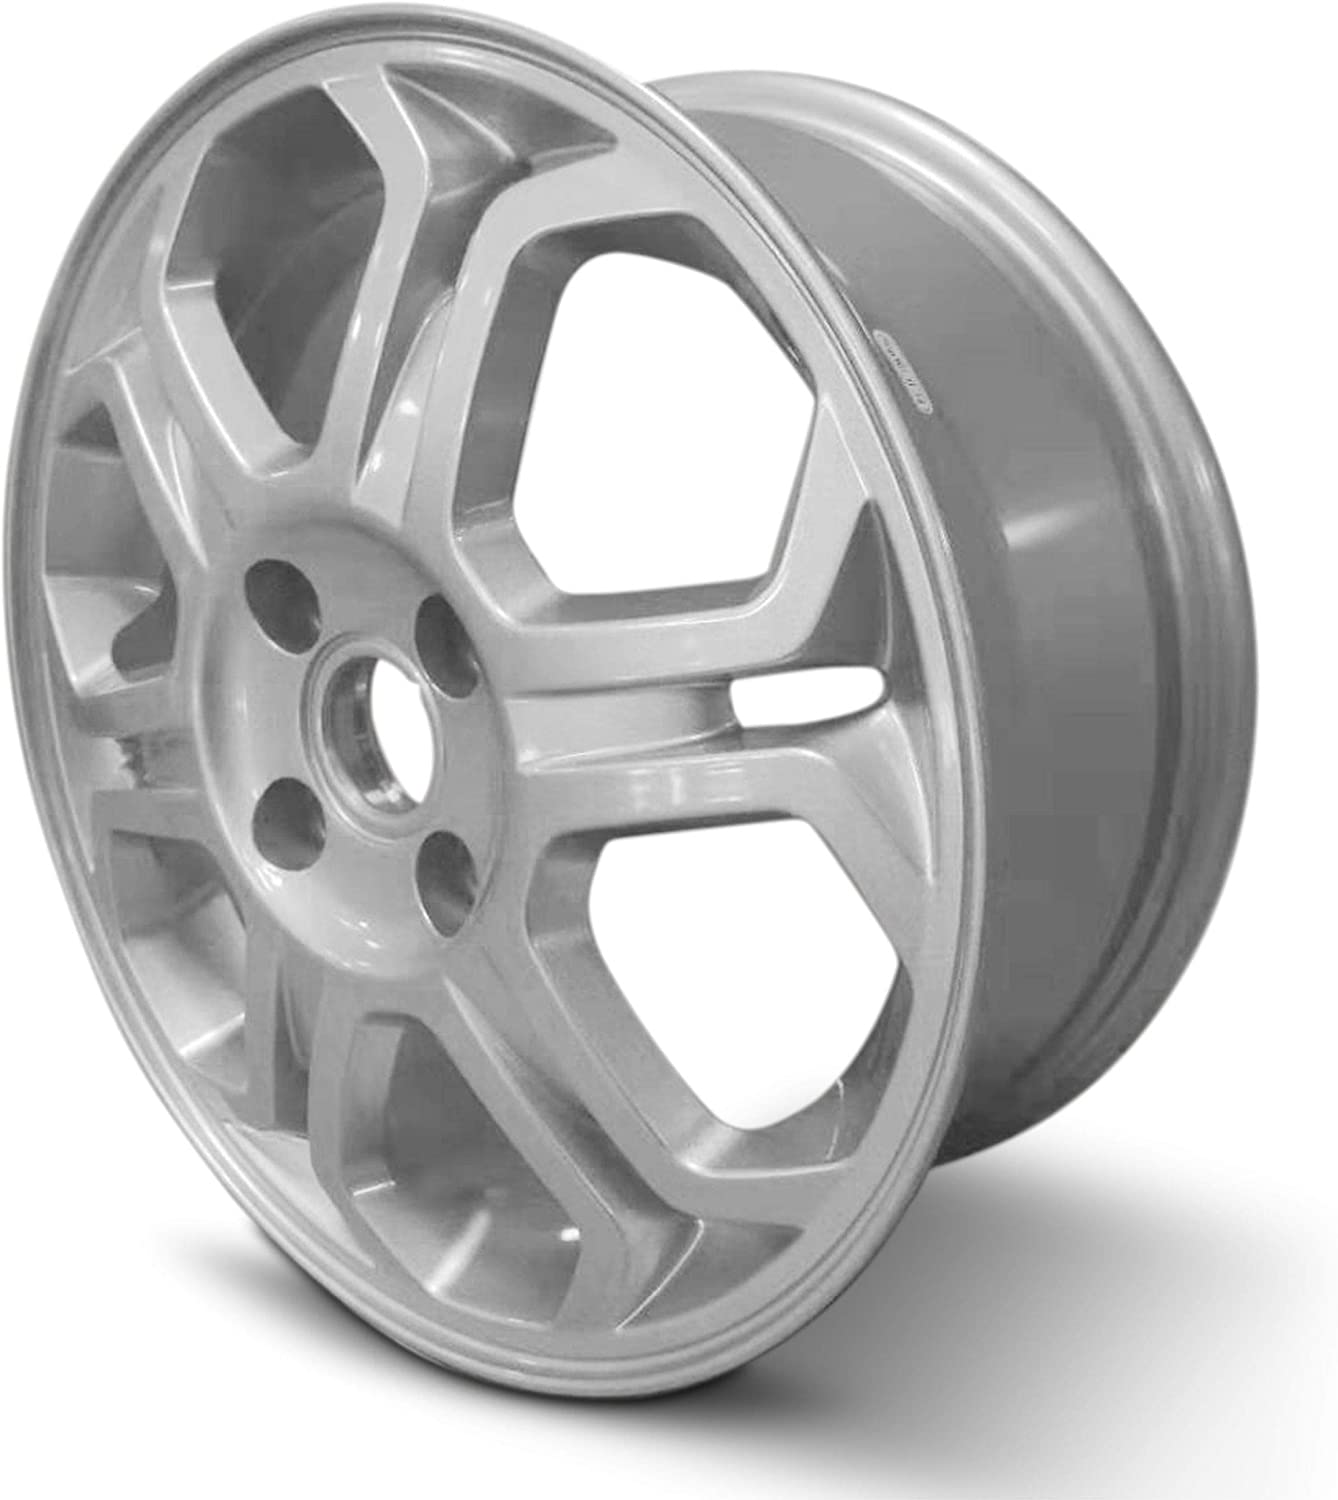 Wheels & Tires Exact OEM Replacement Road Ready Car Wheel for 2008 ...